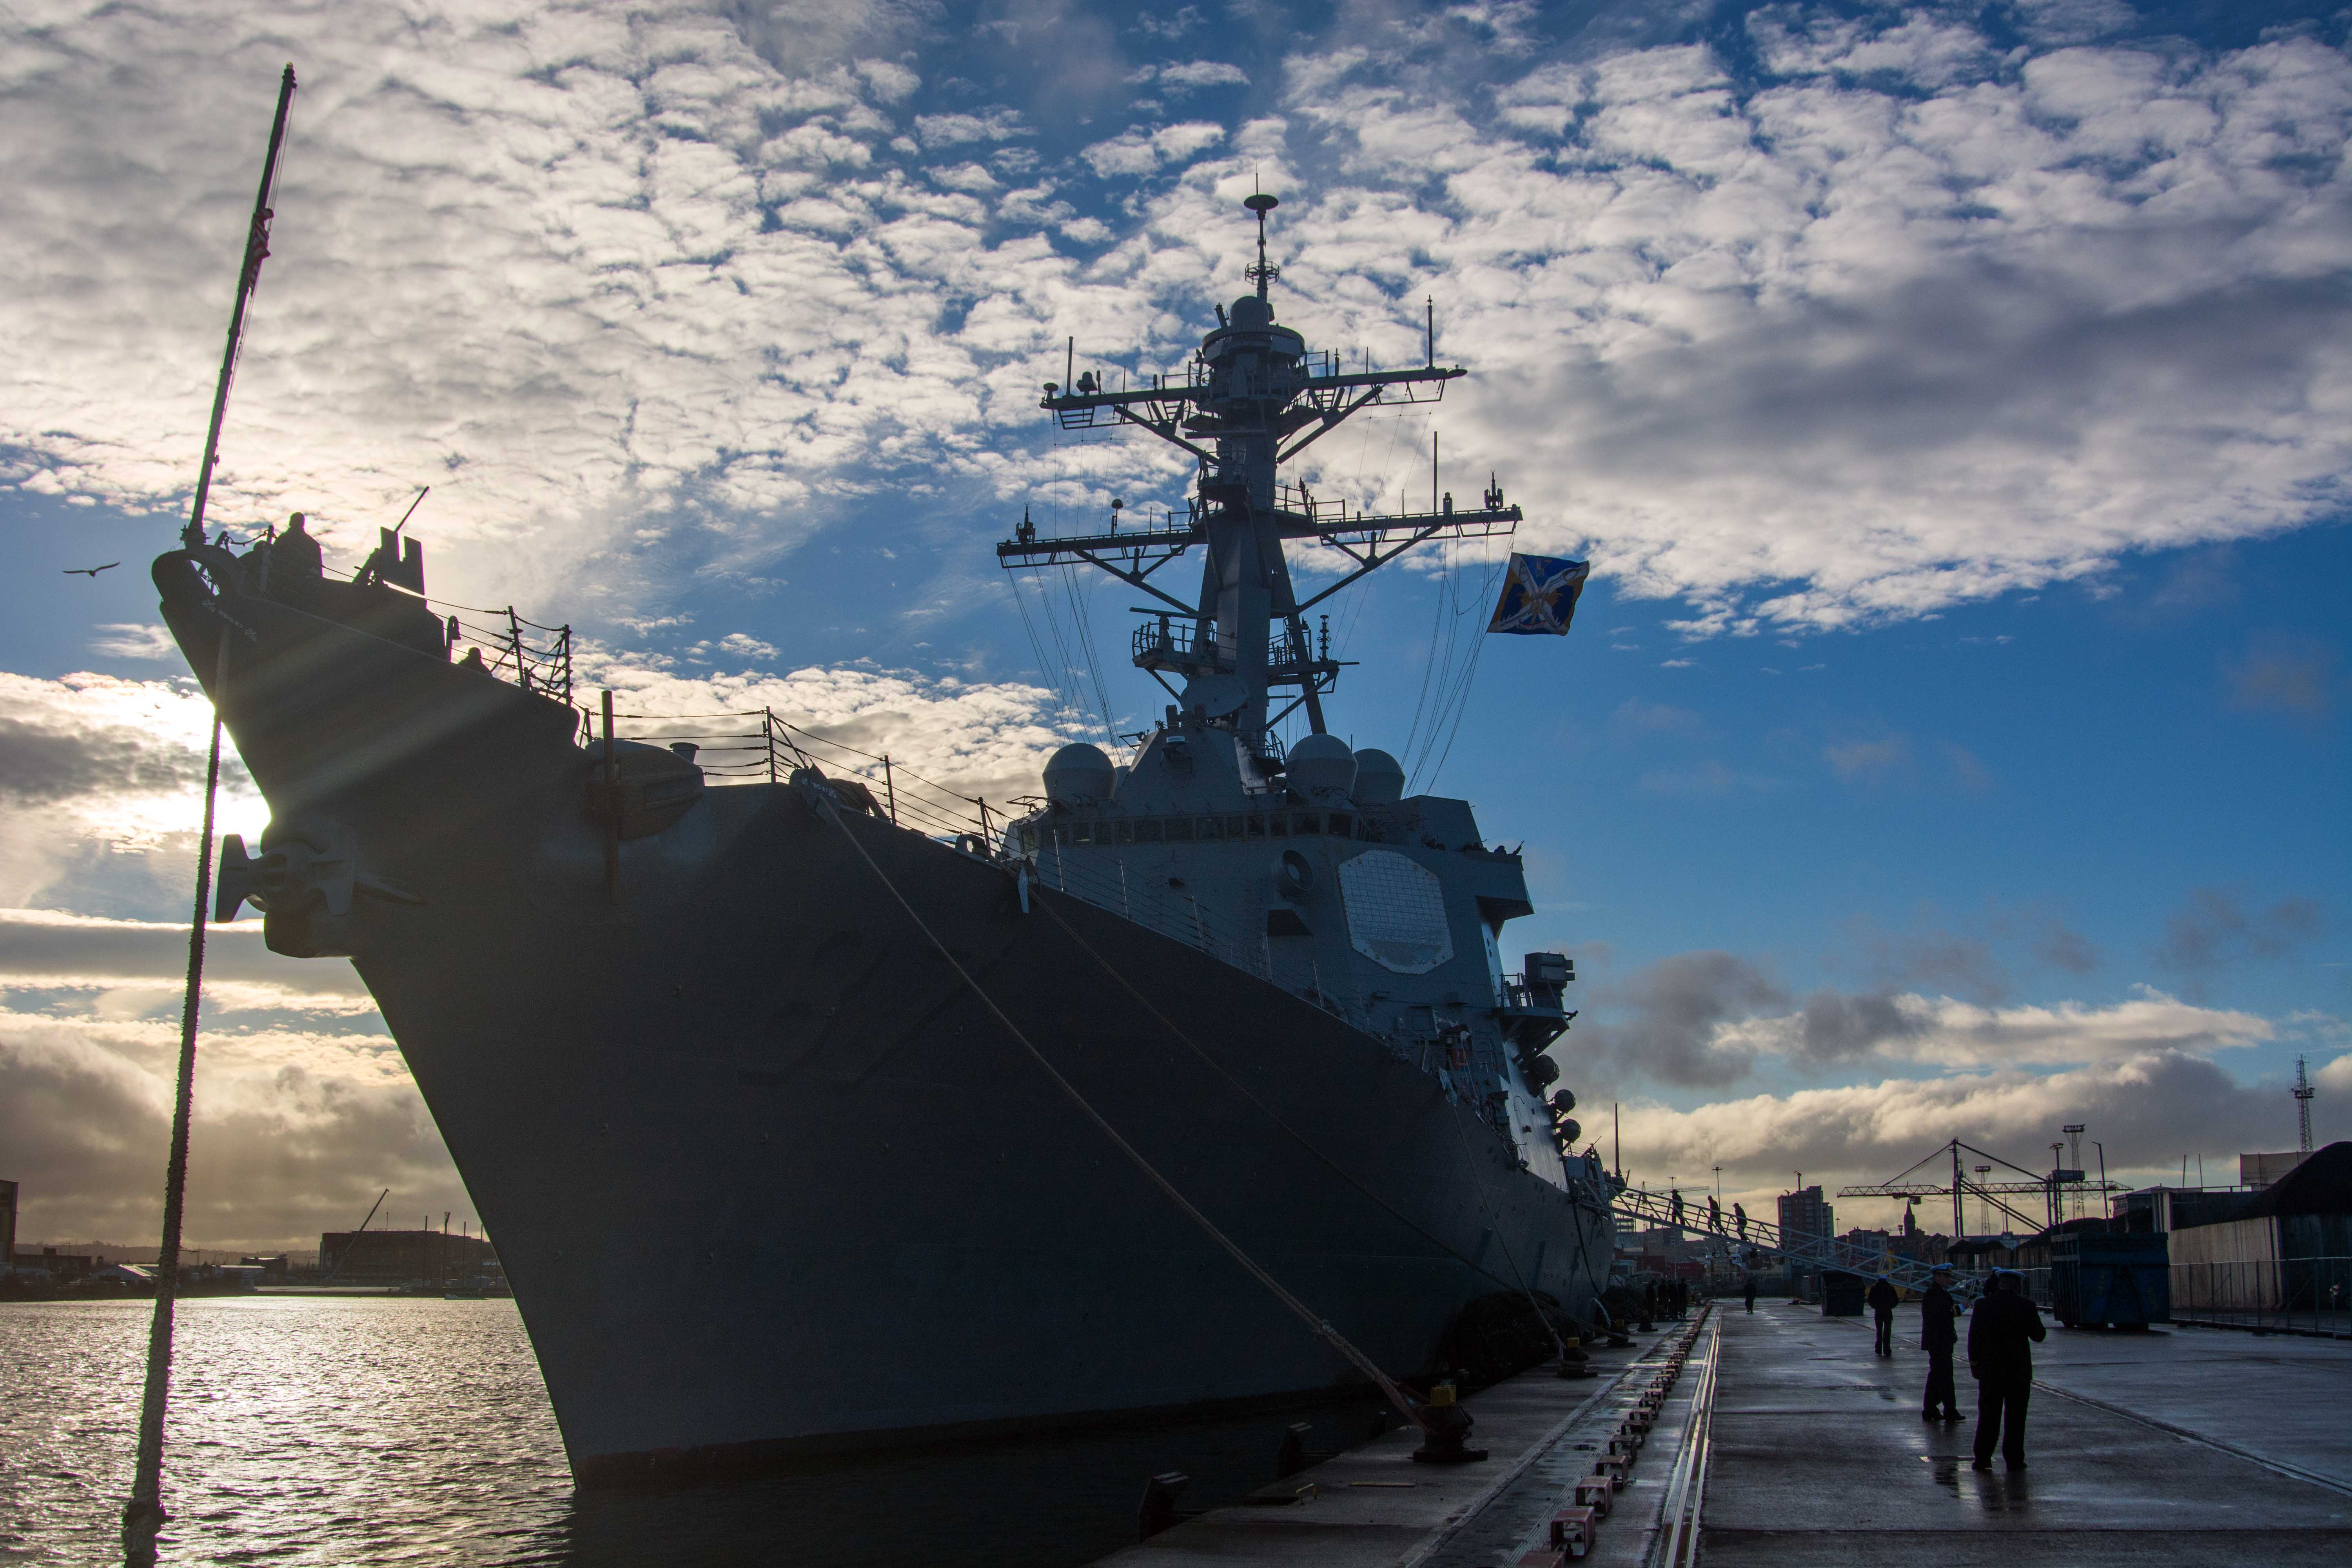 The guided-missile destroyer USS Mason (DDG 87) moored to Belfast Harbor for a scheduled port visit on Dec. 15, 2016. US Navy photo.